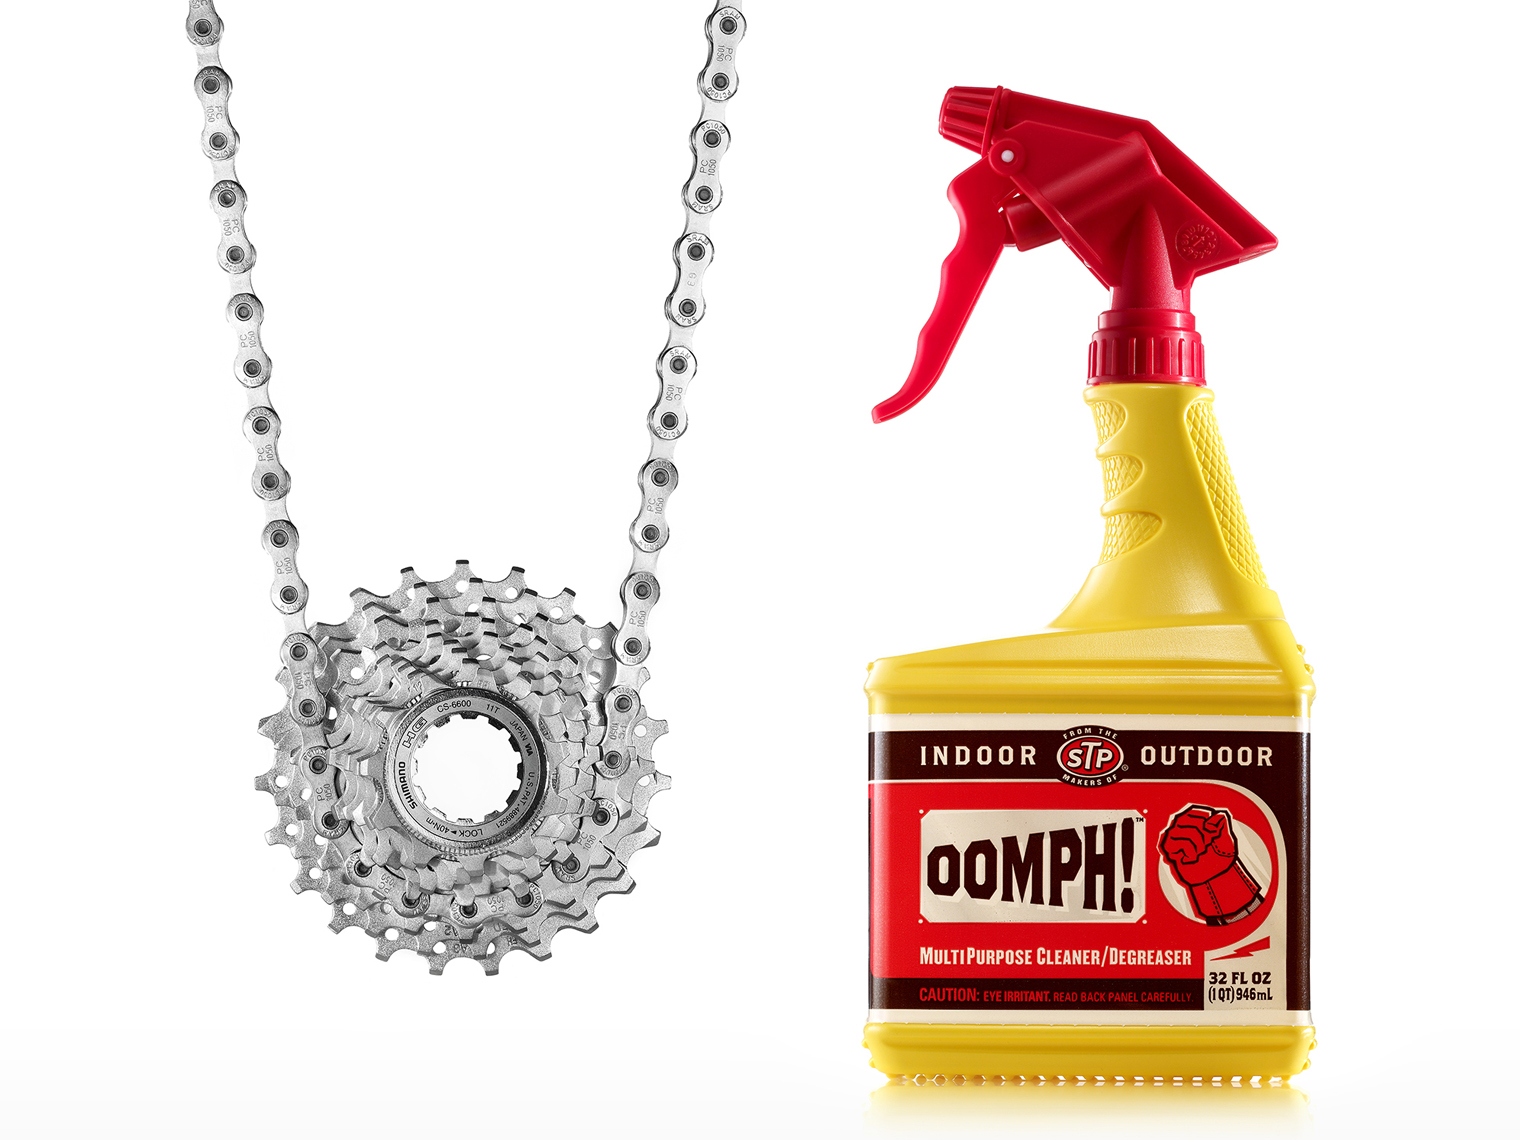 Oomph & Chain.jpg